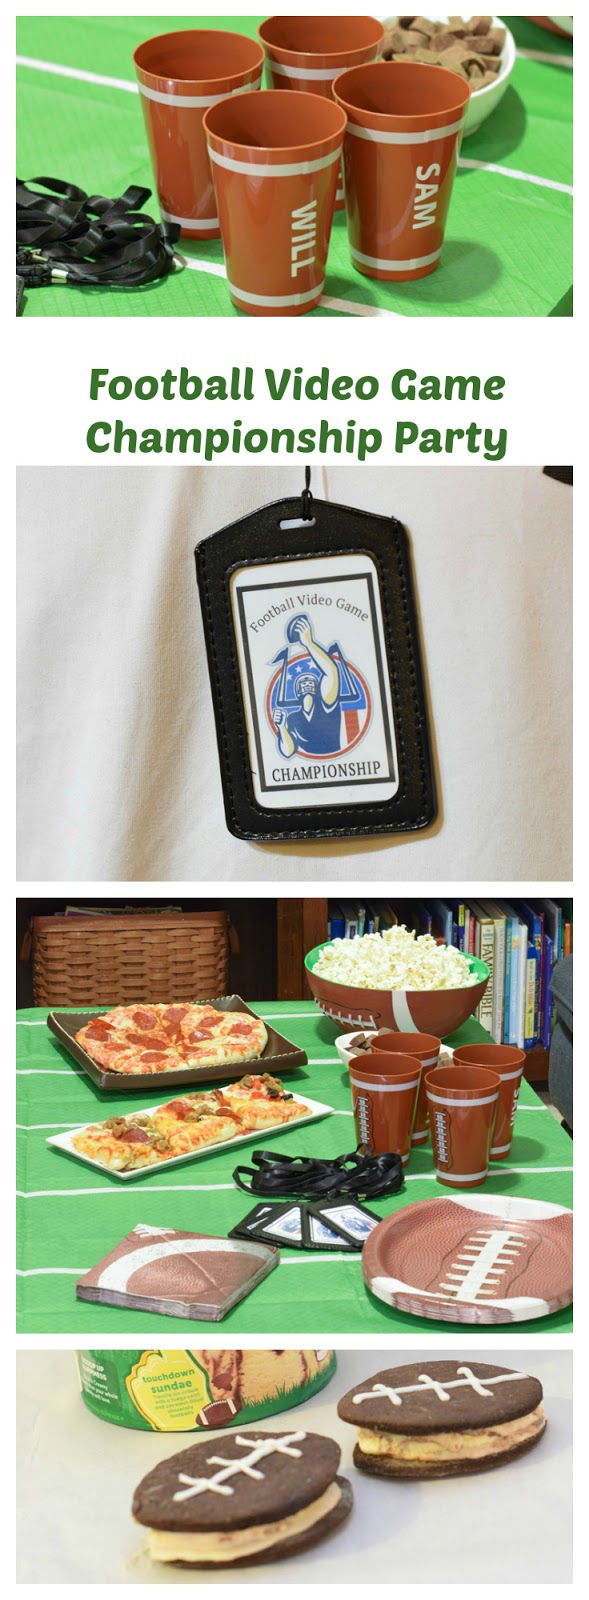 Football video game party ideas. Looking for a fun party for your teenage boy? Why not throw a Football video game party? Easy ideas for how to entertain kiddos during the Big Game. Features DiGiorno pizza, personalized football cups, free printable lanyards, and an incredible recipe for football shaped ice cream sandwiches! #GameTimeMVP #CollectiveBias #ad